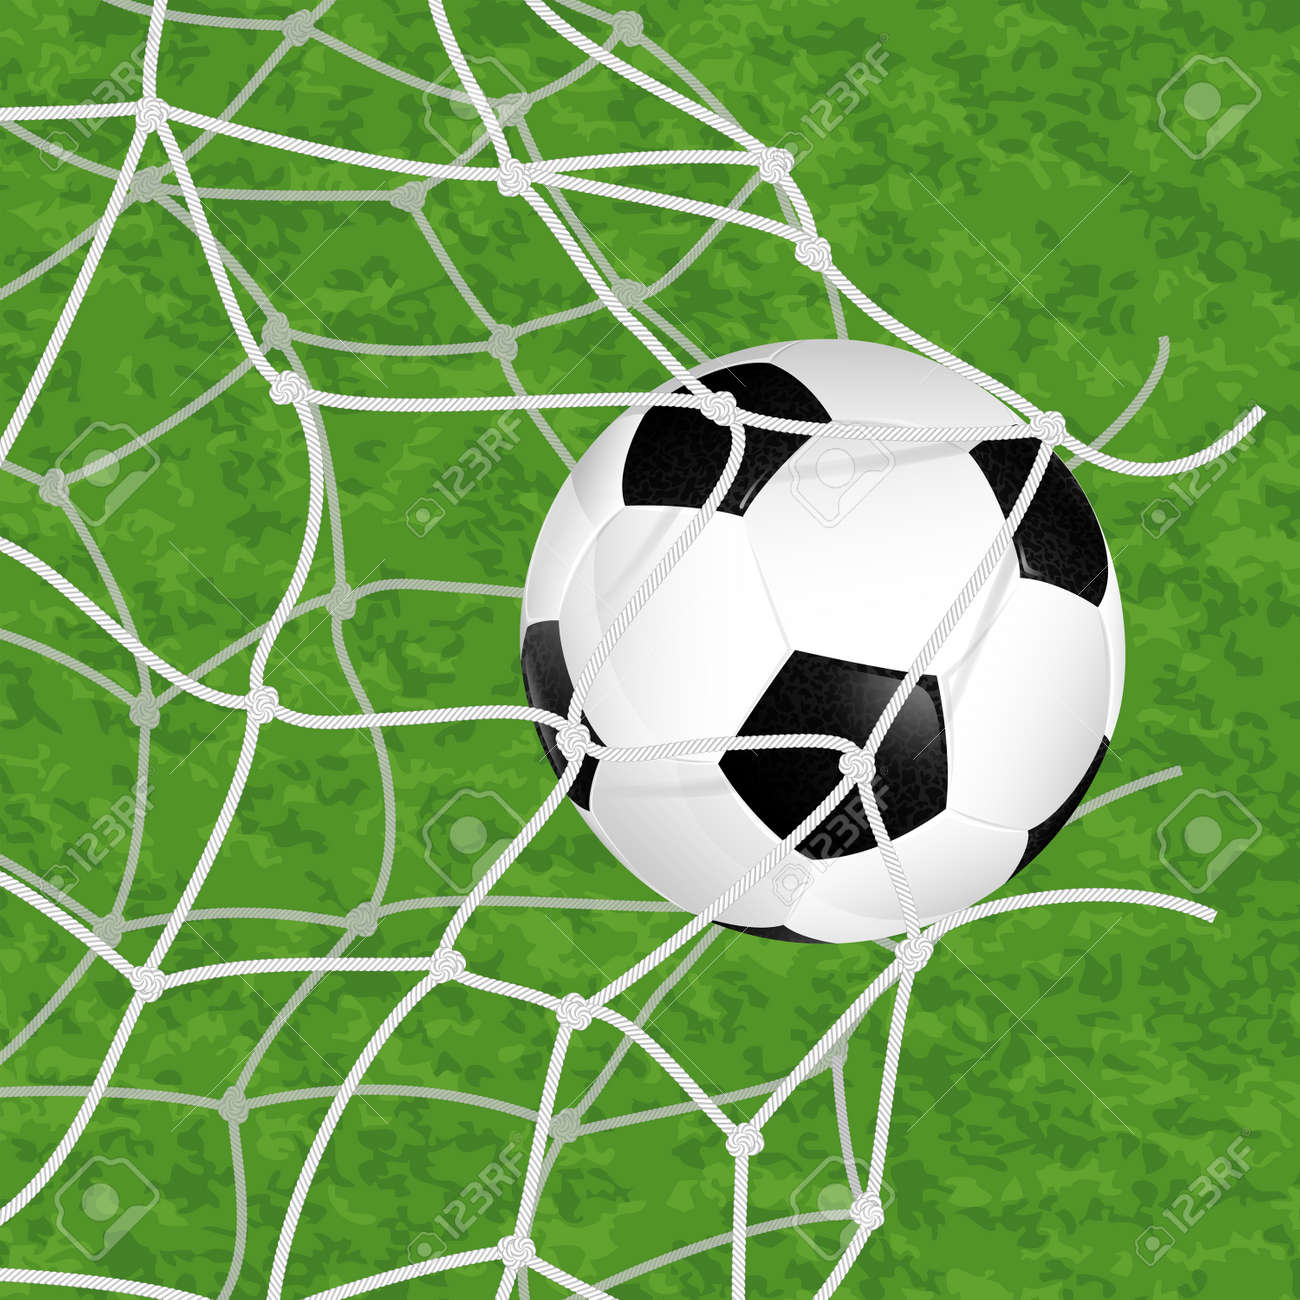 Soccer Concept - Goal. Soccer Ball in Net Torn on textured grass background, vector illustration Stock Vector - 23292452